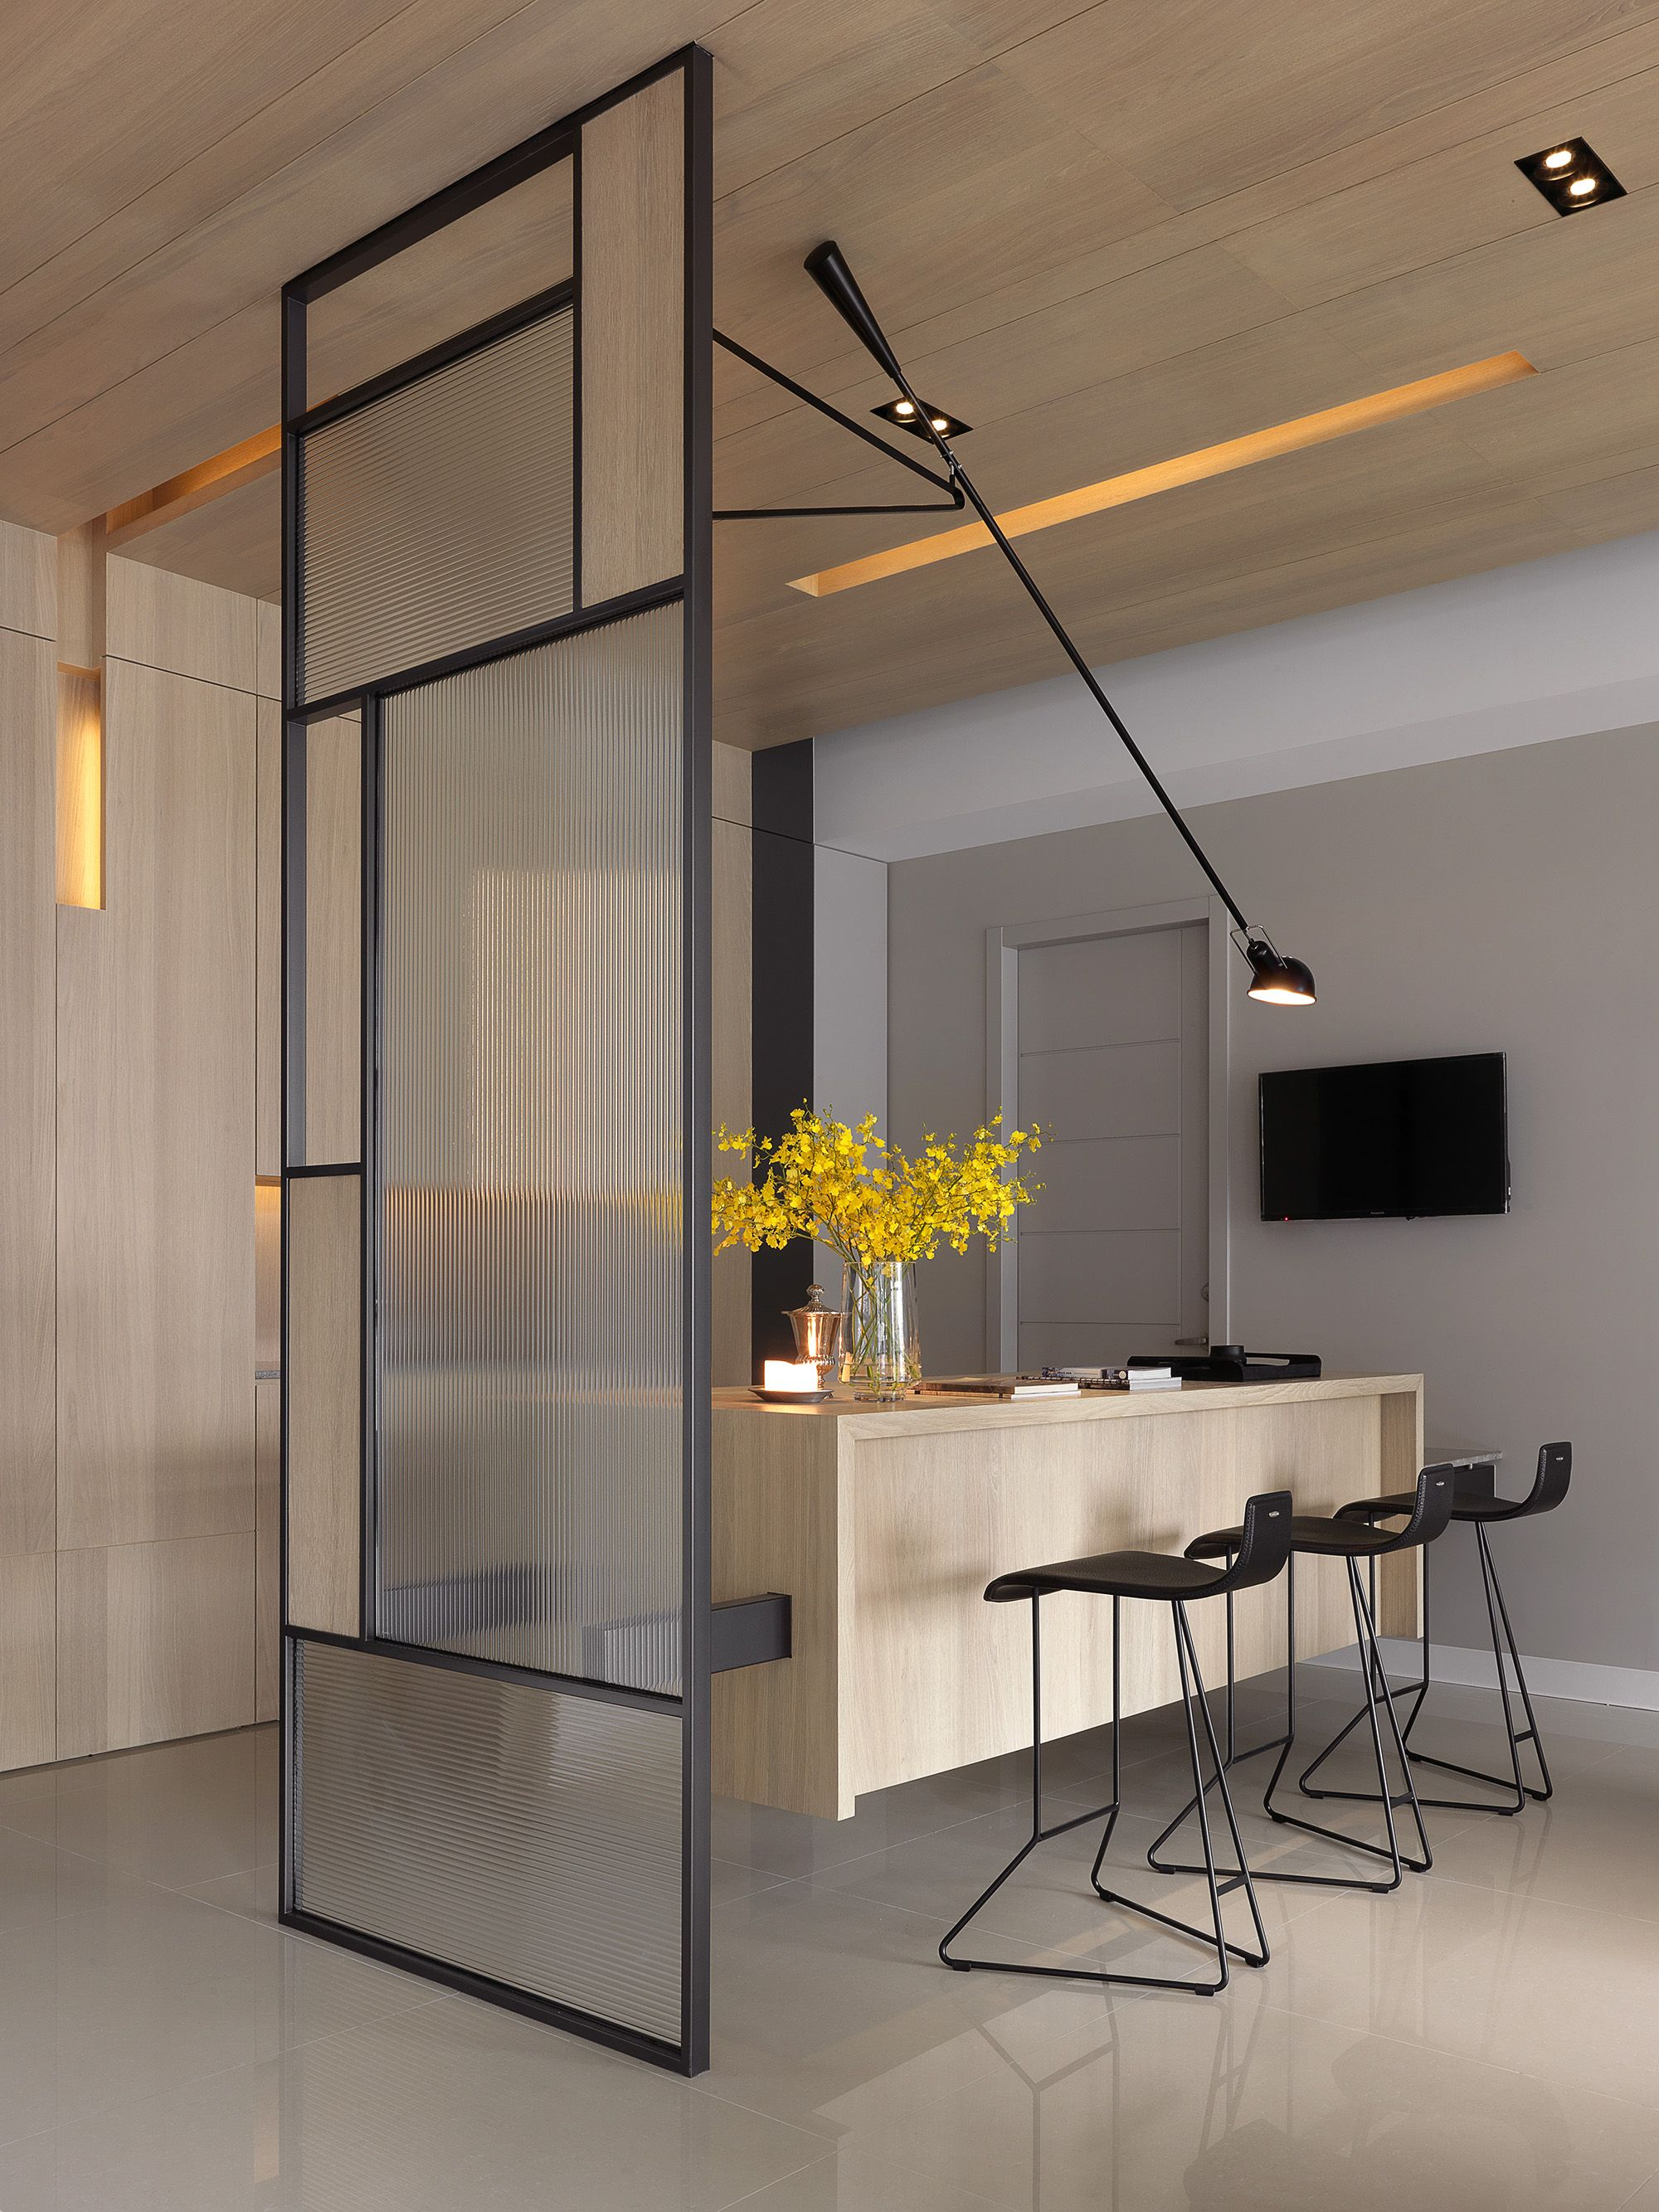 It S Lovely But I Would Be Forever Hurdling Those Black Bars To Get Through That Gap Separation Cuisine Salon Déco Maison Aménagement Appartement